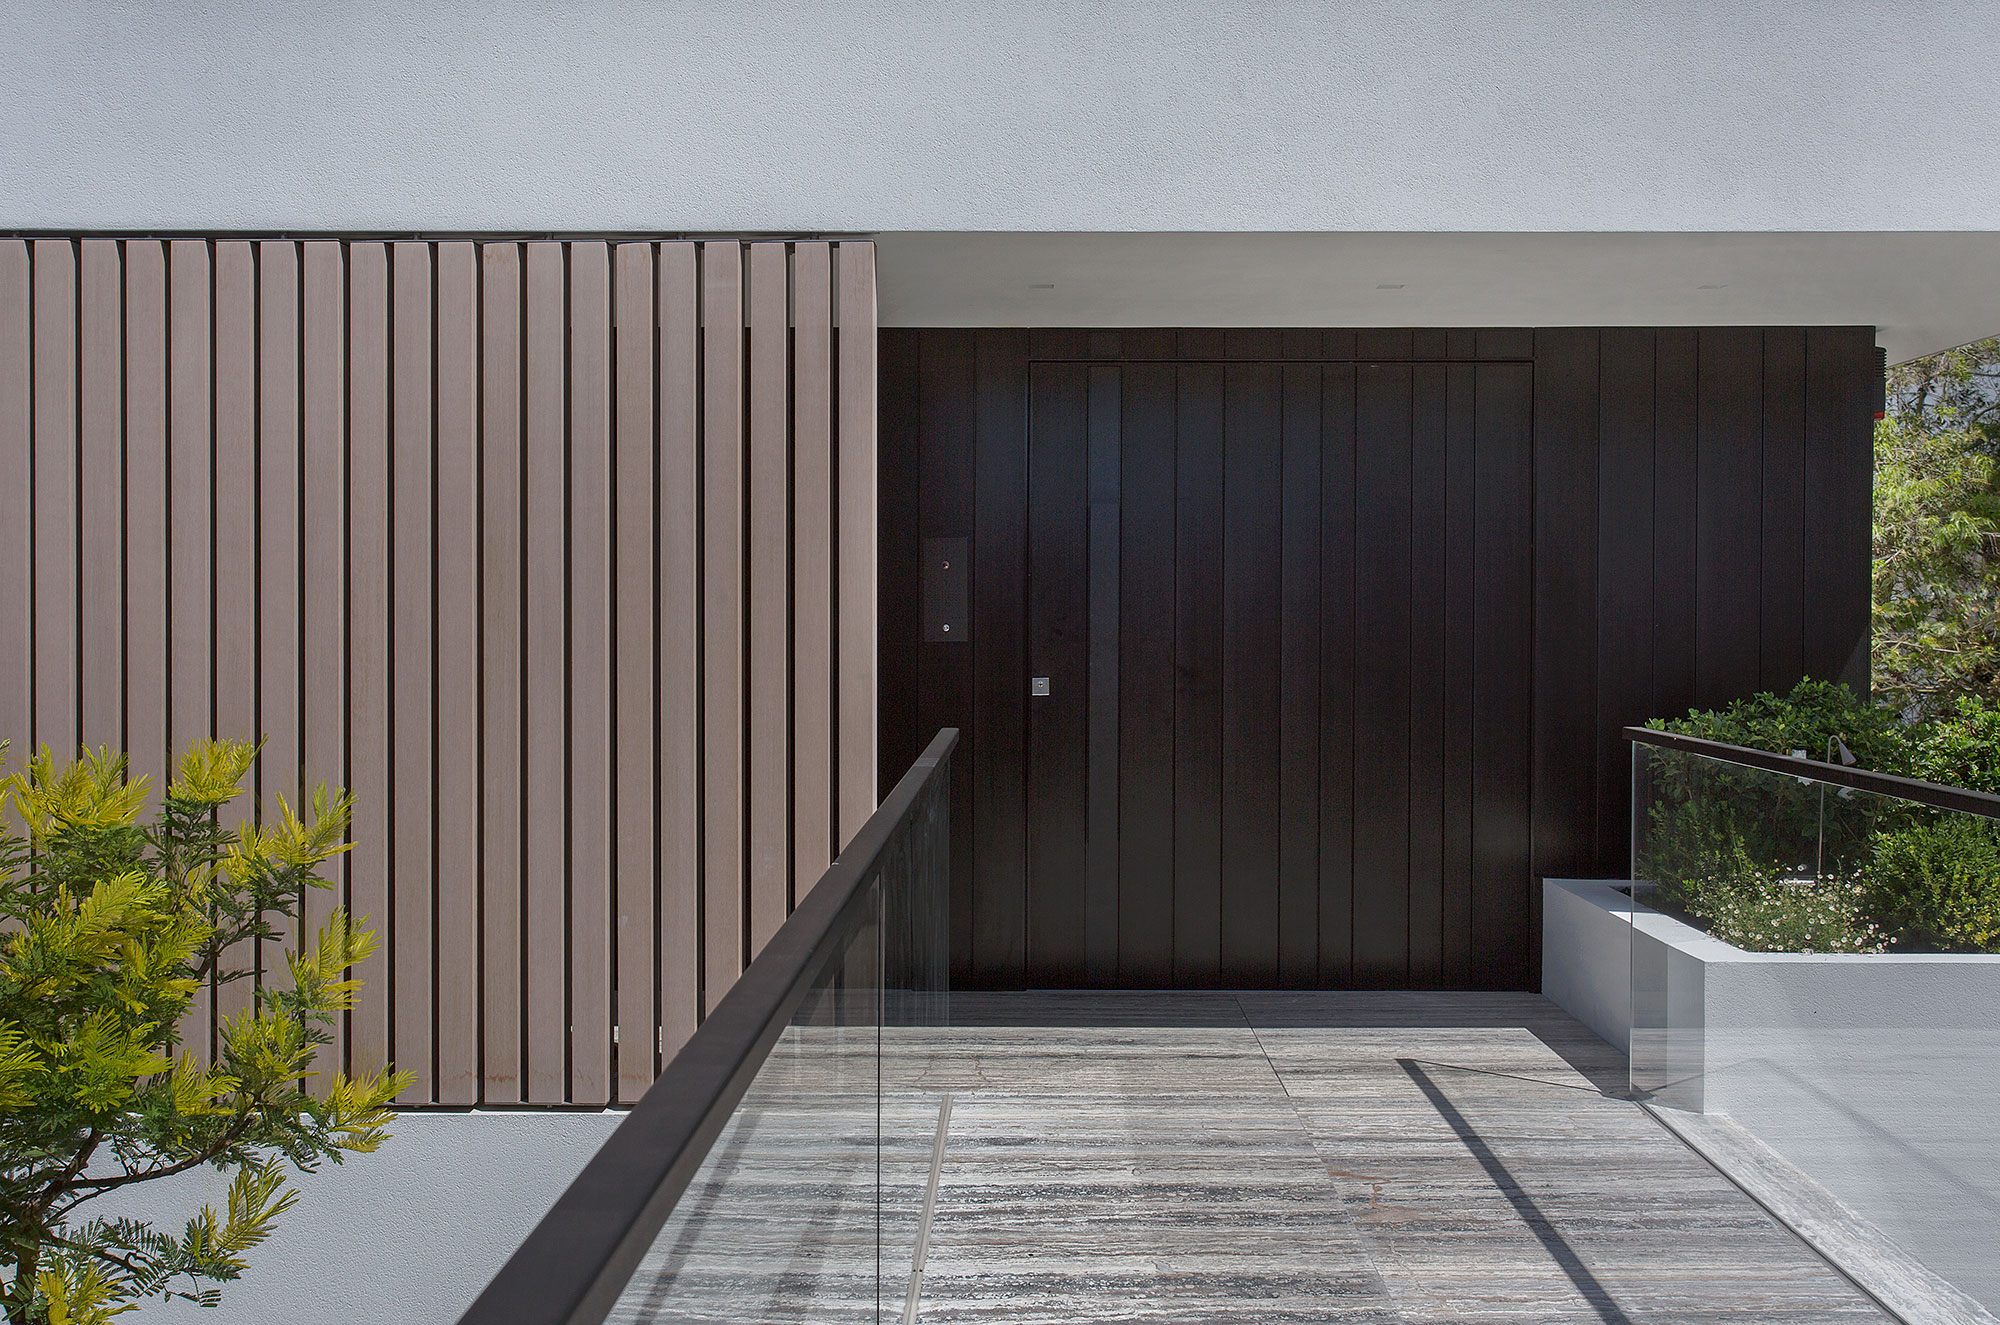 Pivot Door Covered With Vertical Aluminum Insets. Wall Cladding Made With The Same Material